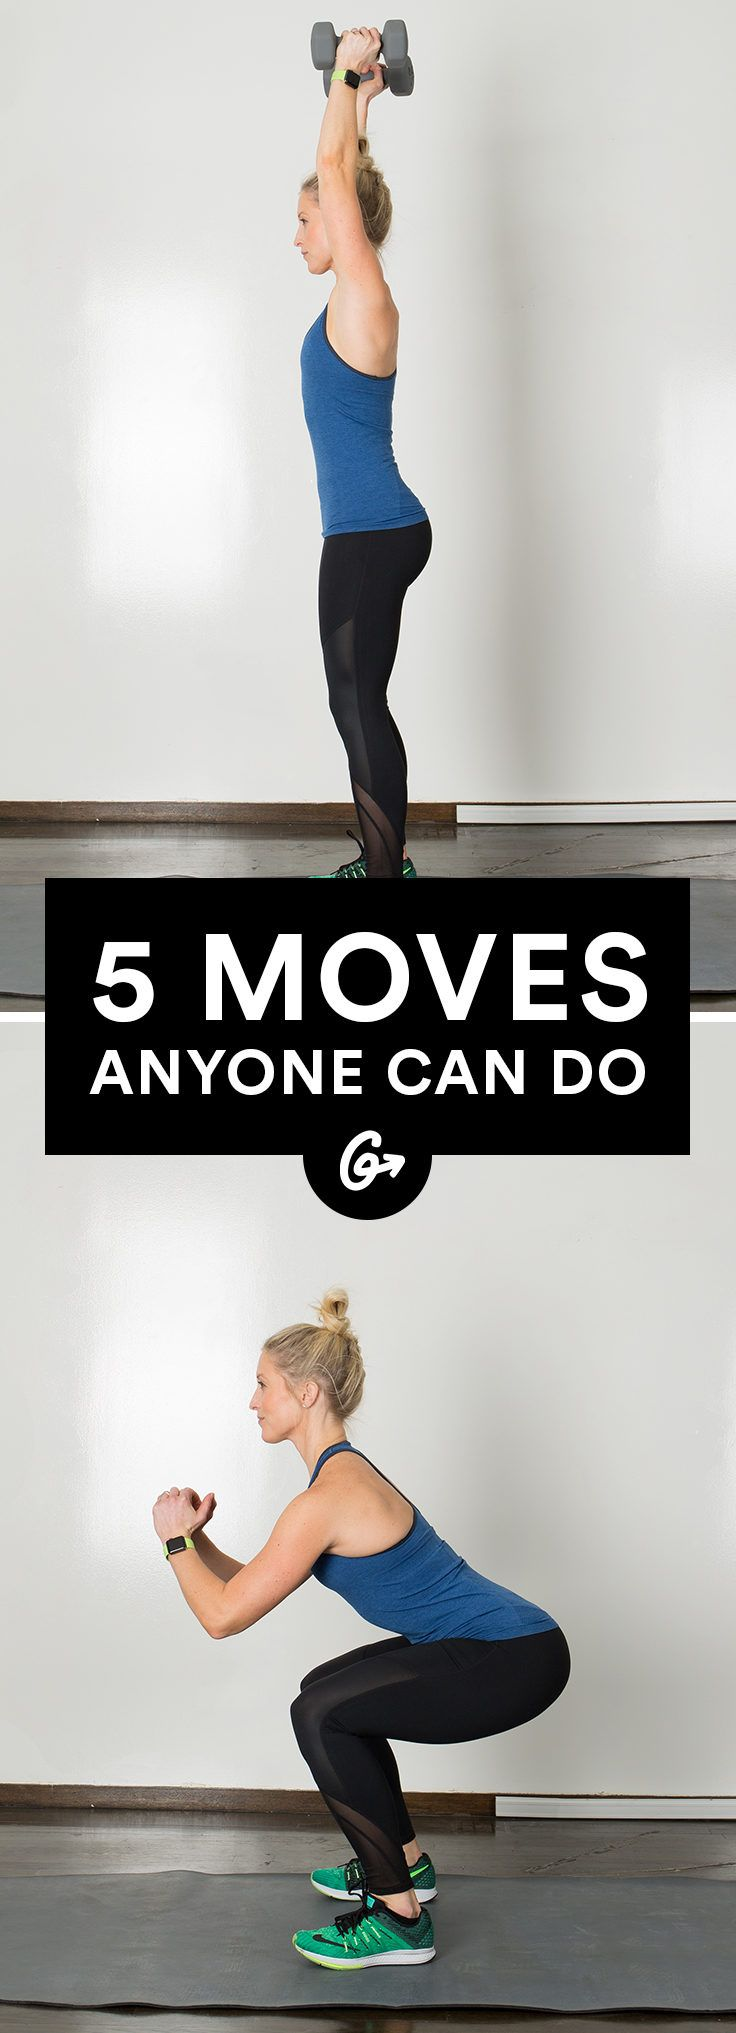 You can learn a lot about your current strengths and weaknesses. #fitness #workout http://greatist.com/move/moves-anyone-can-do